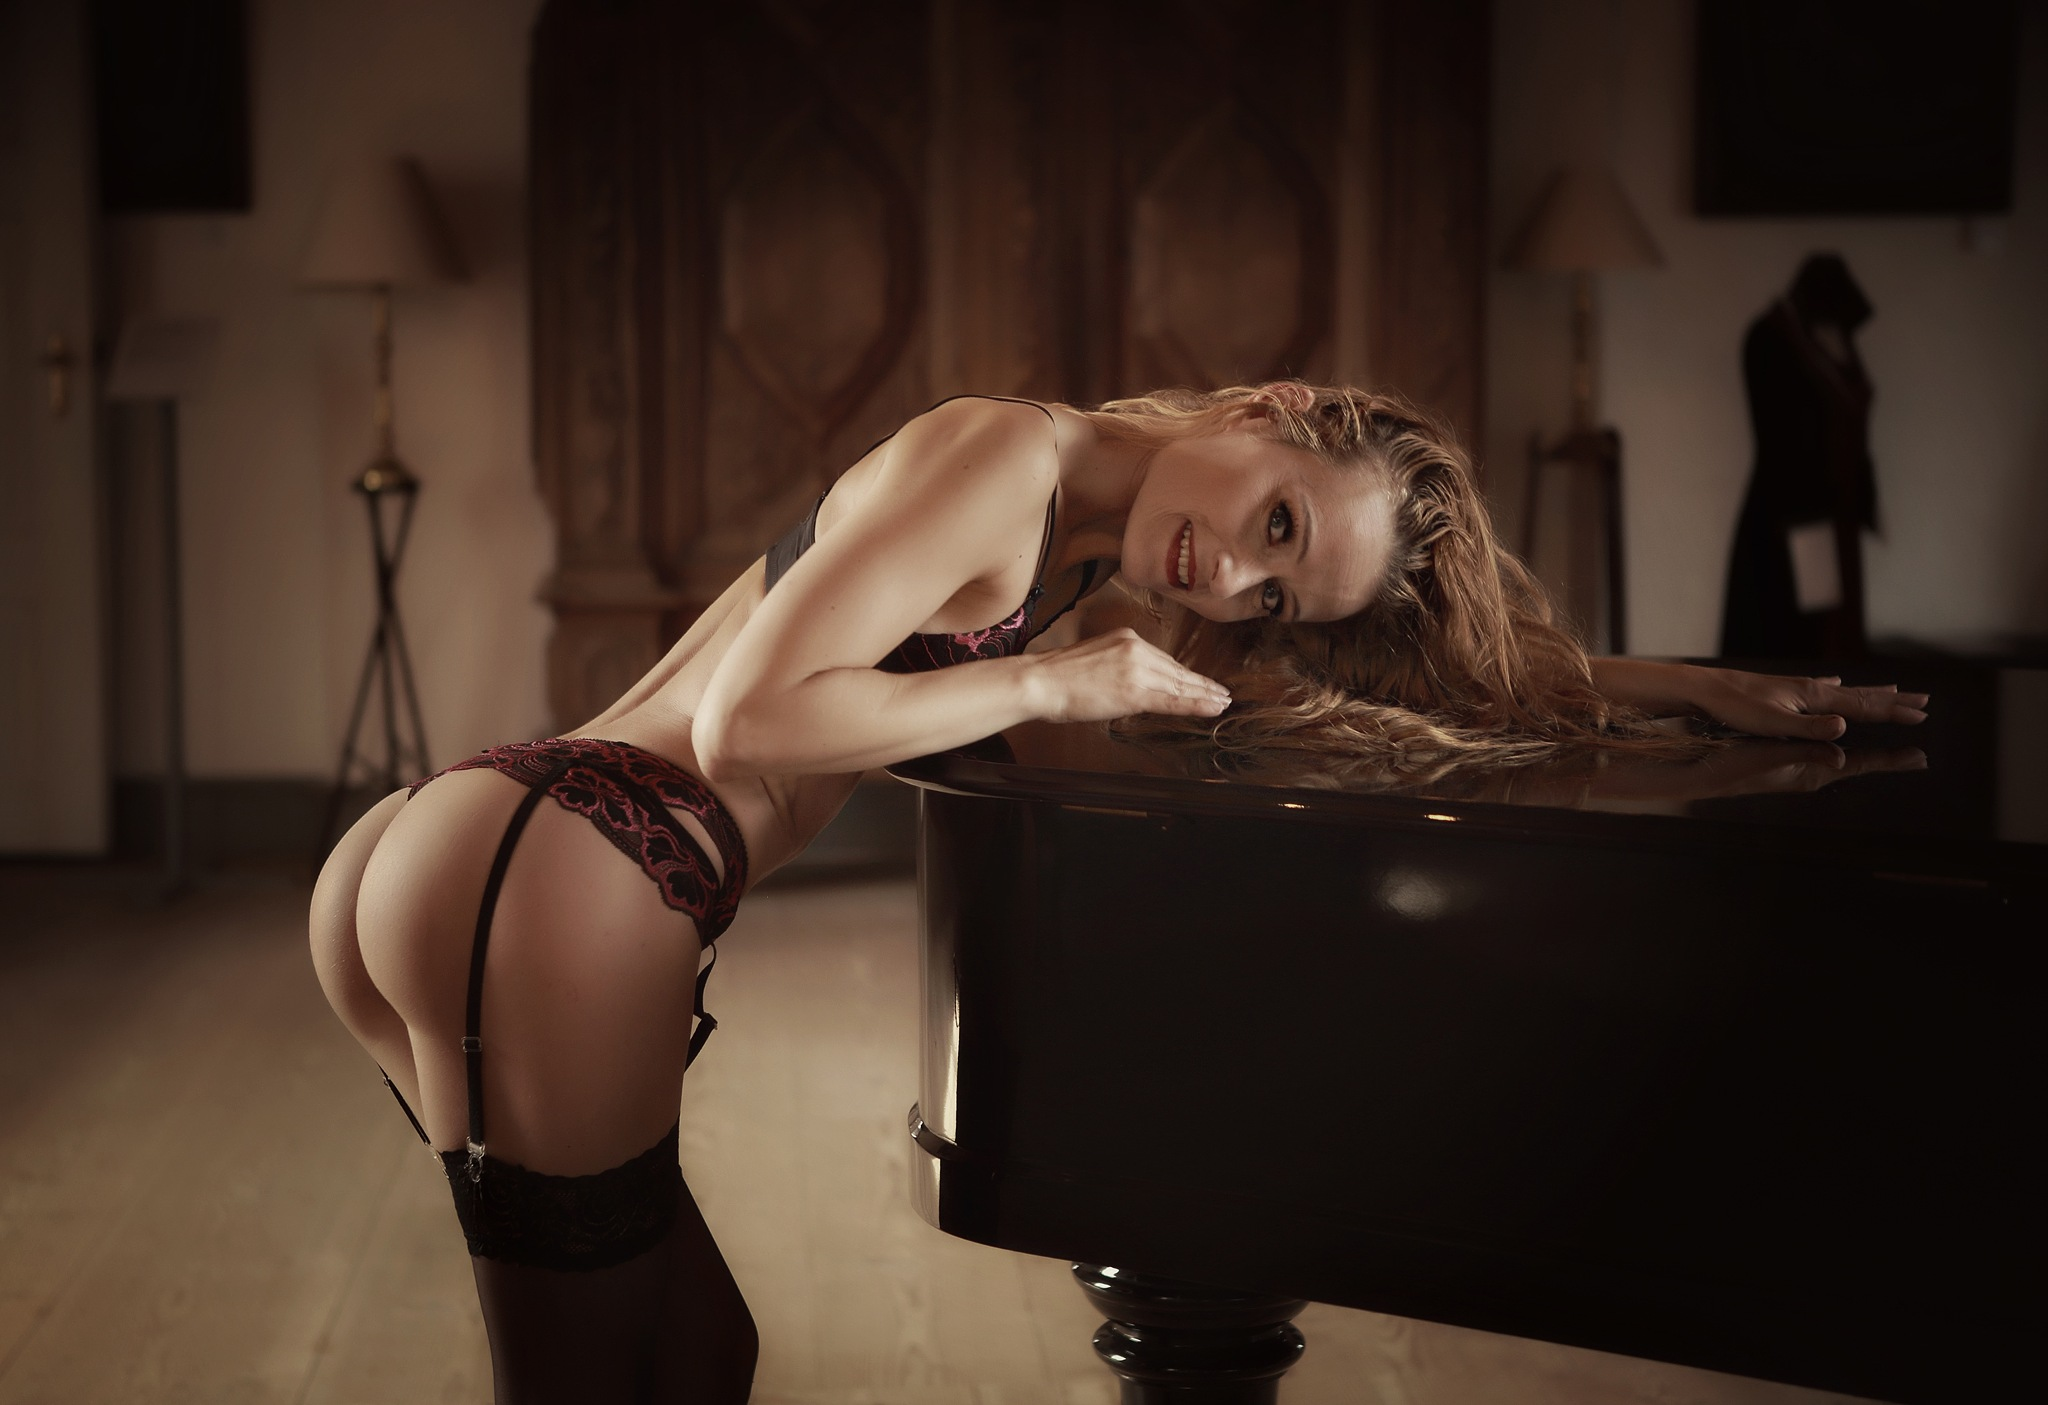 by the piano  by AB Tønnesen - Freelance model